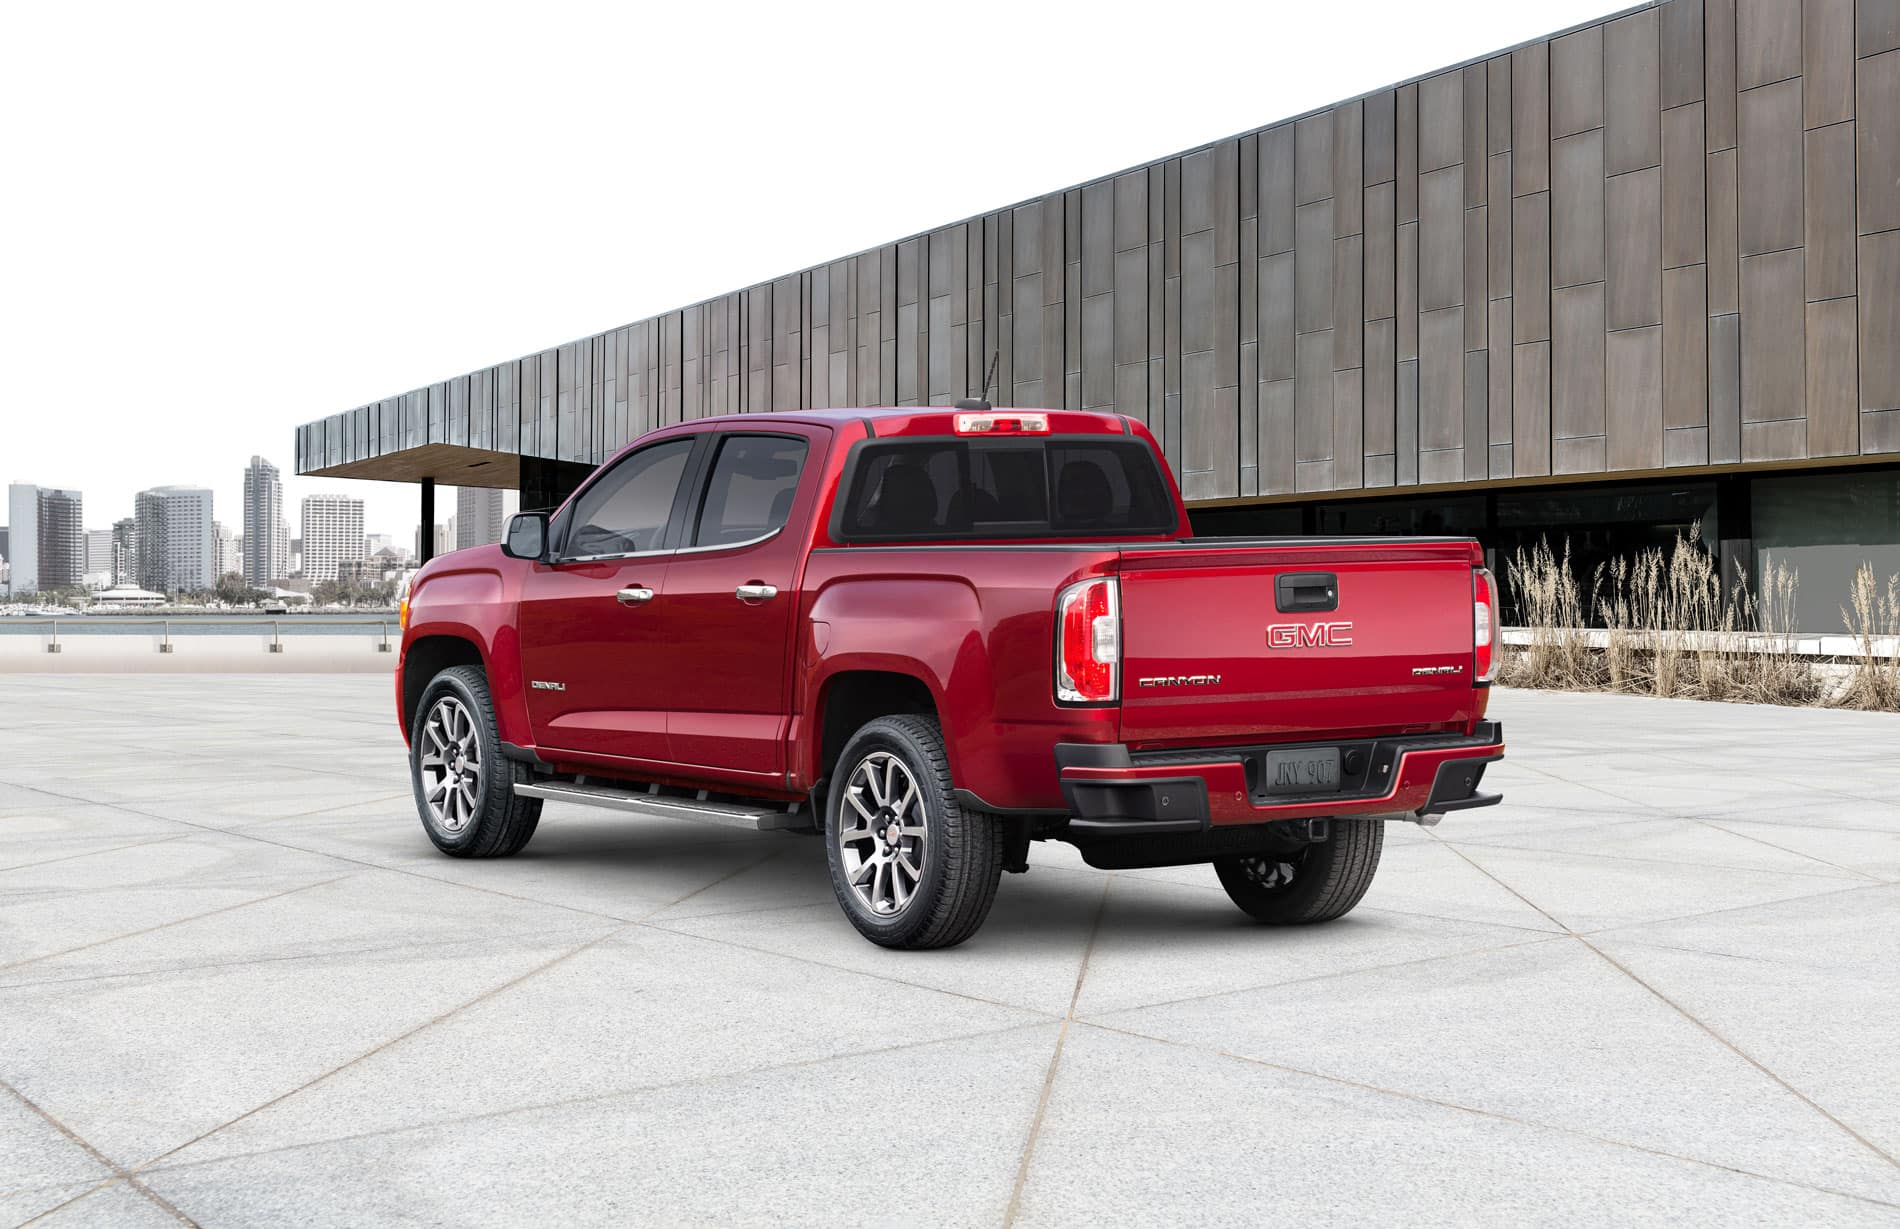 chevy colorado vs gmc canyon cross town sibling showdown. Black Bedroom Furniture Sets. Home Design Ideas